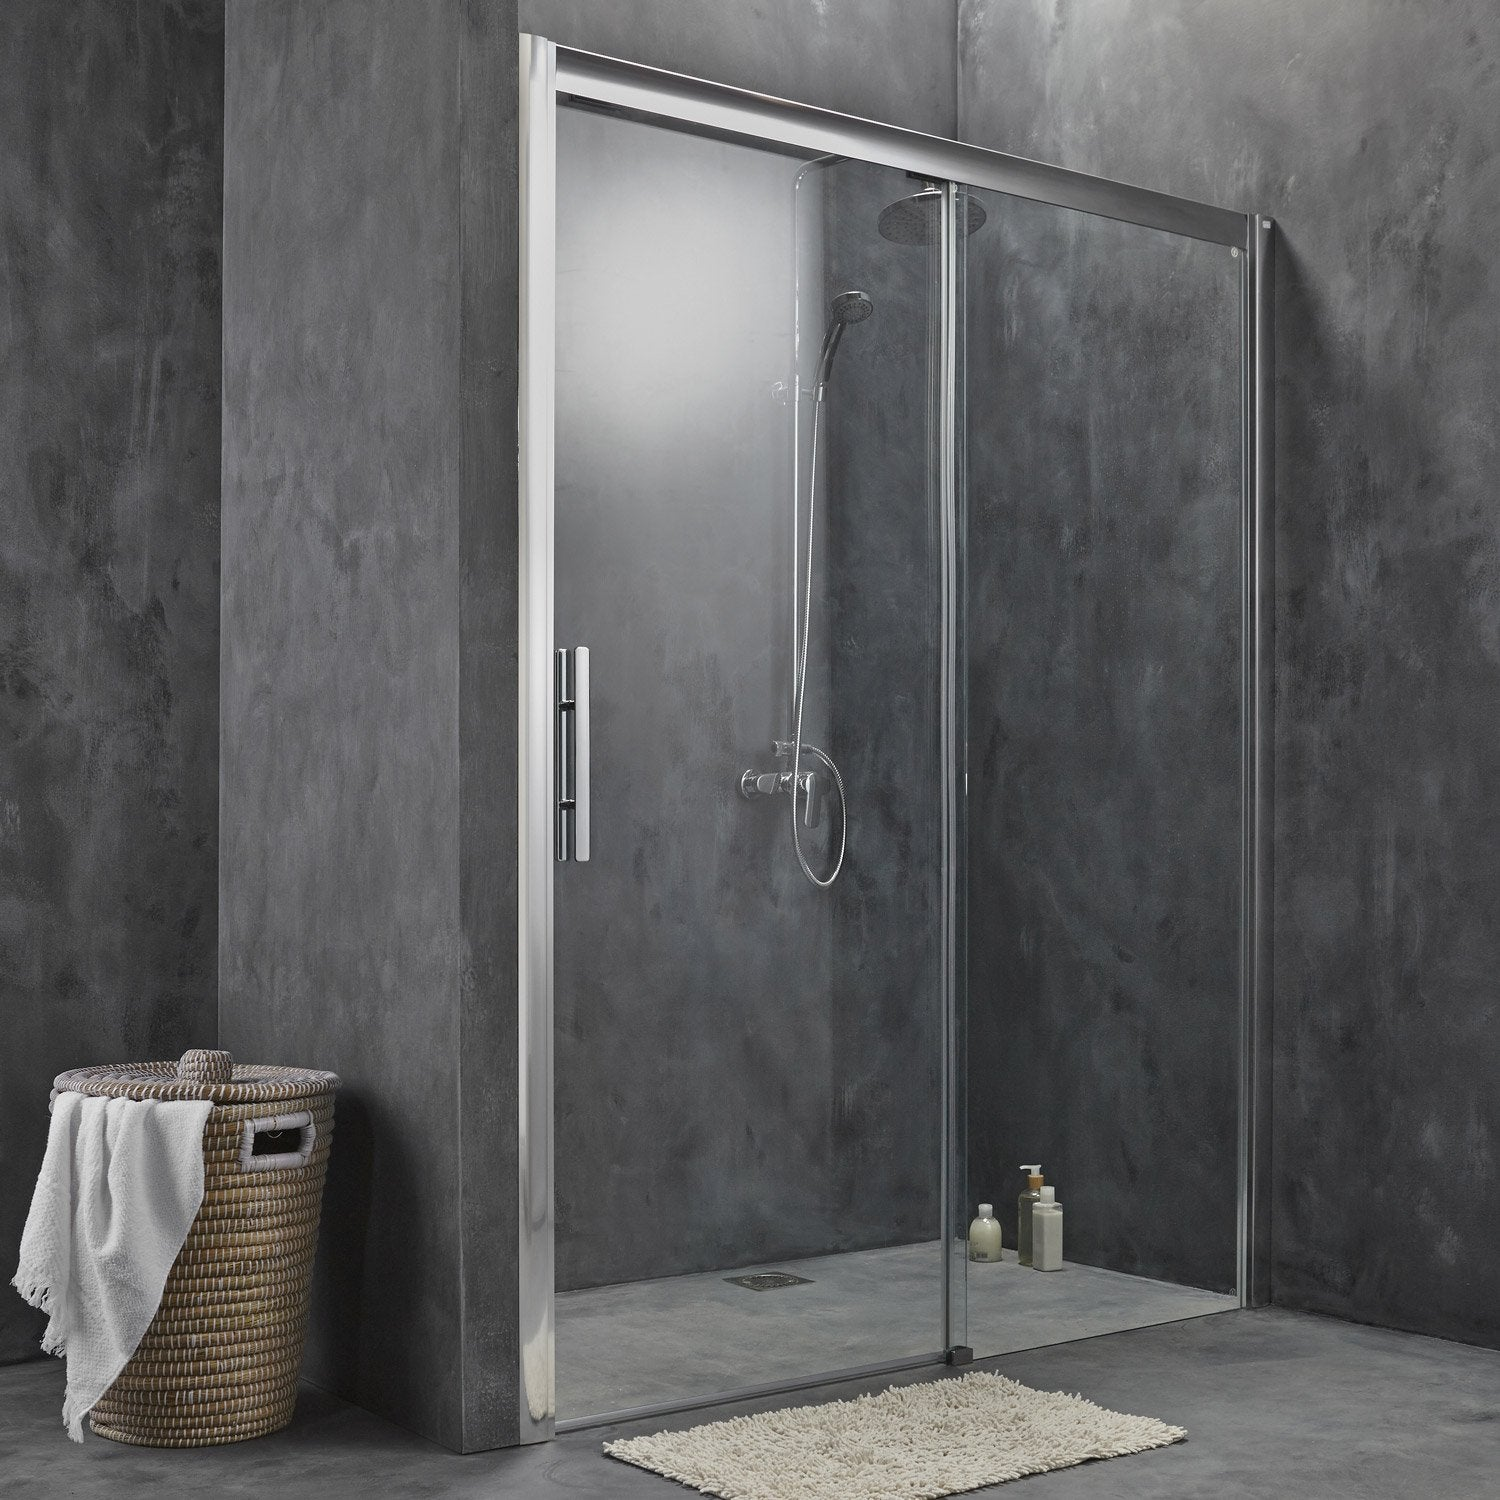 Porte de douche coulissante 160 cm transparent adena for Porte coulissante douche 160